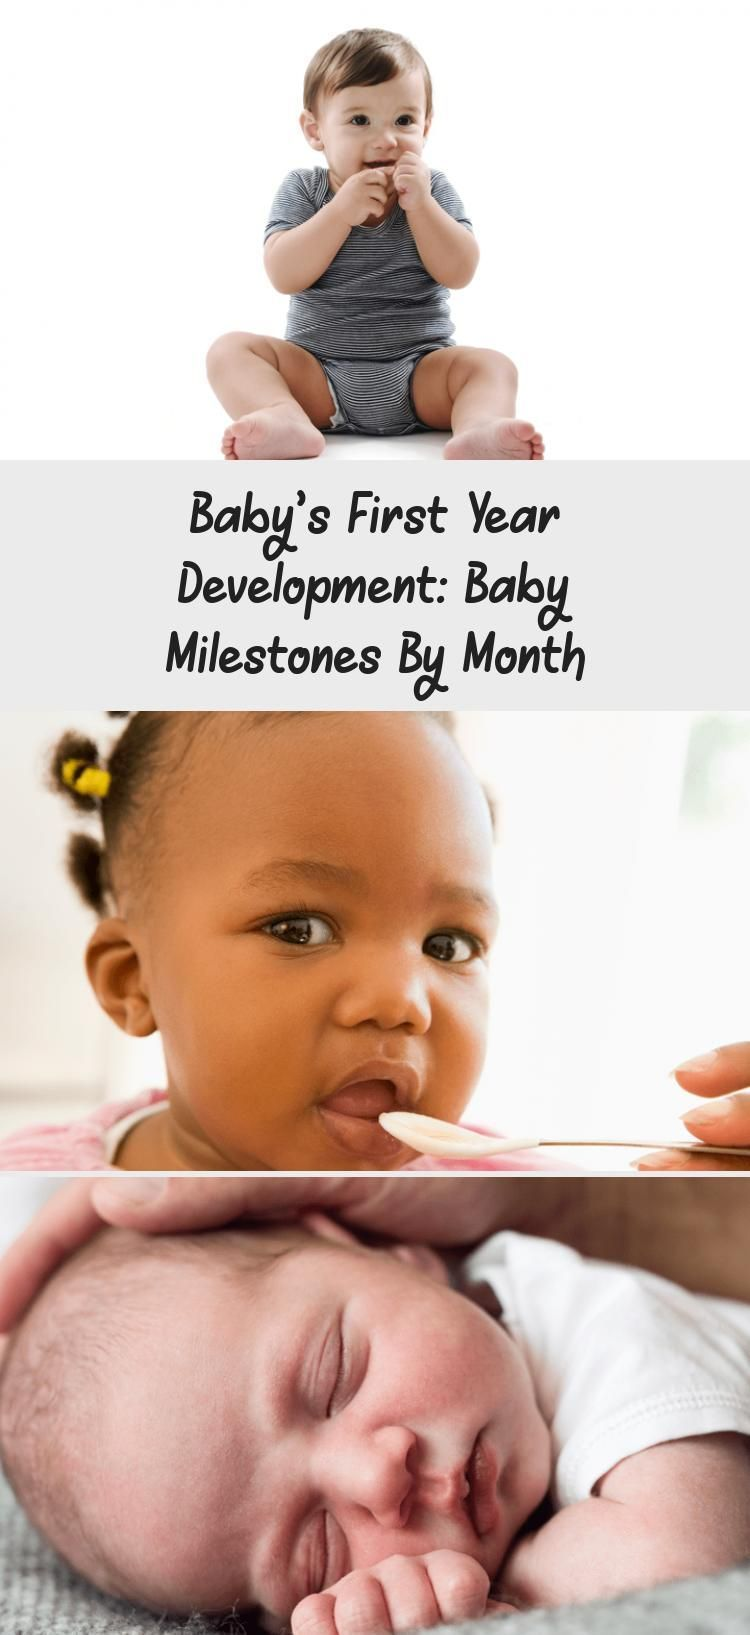 Baby's first year development: baby's goals per month - healthy and fit diet ..., #5montholdbabydevelopement #babydevelopementactivities #babydevelopementbrain #babydevelopementbyweek #babydevelopementchart #babydevelopementfirstyear #babydevelopementinwomb #babydevelopementmilestones #babydevelopementstages #babydevelopementtoys #baby39s #development #Diet #fit #goals #Healthy #month #year...